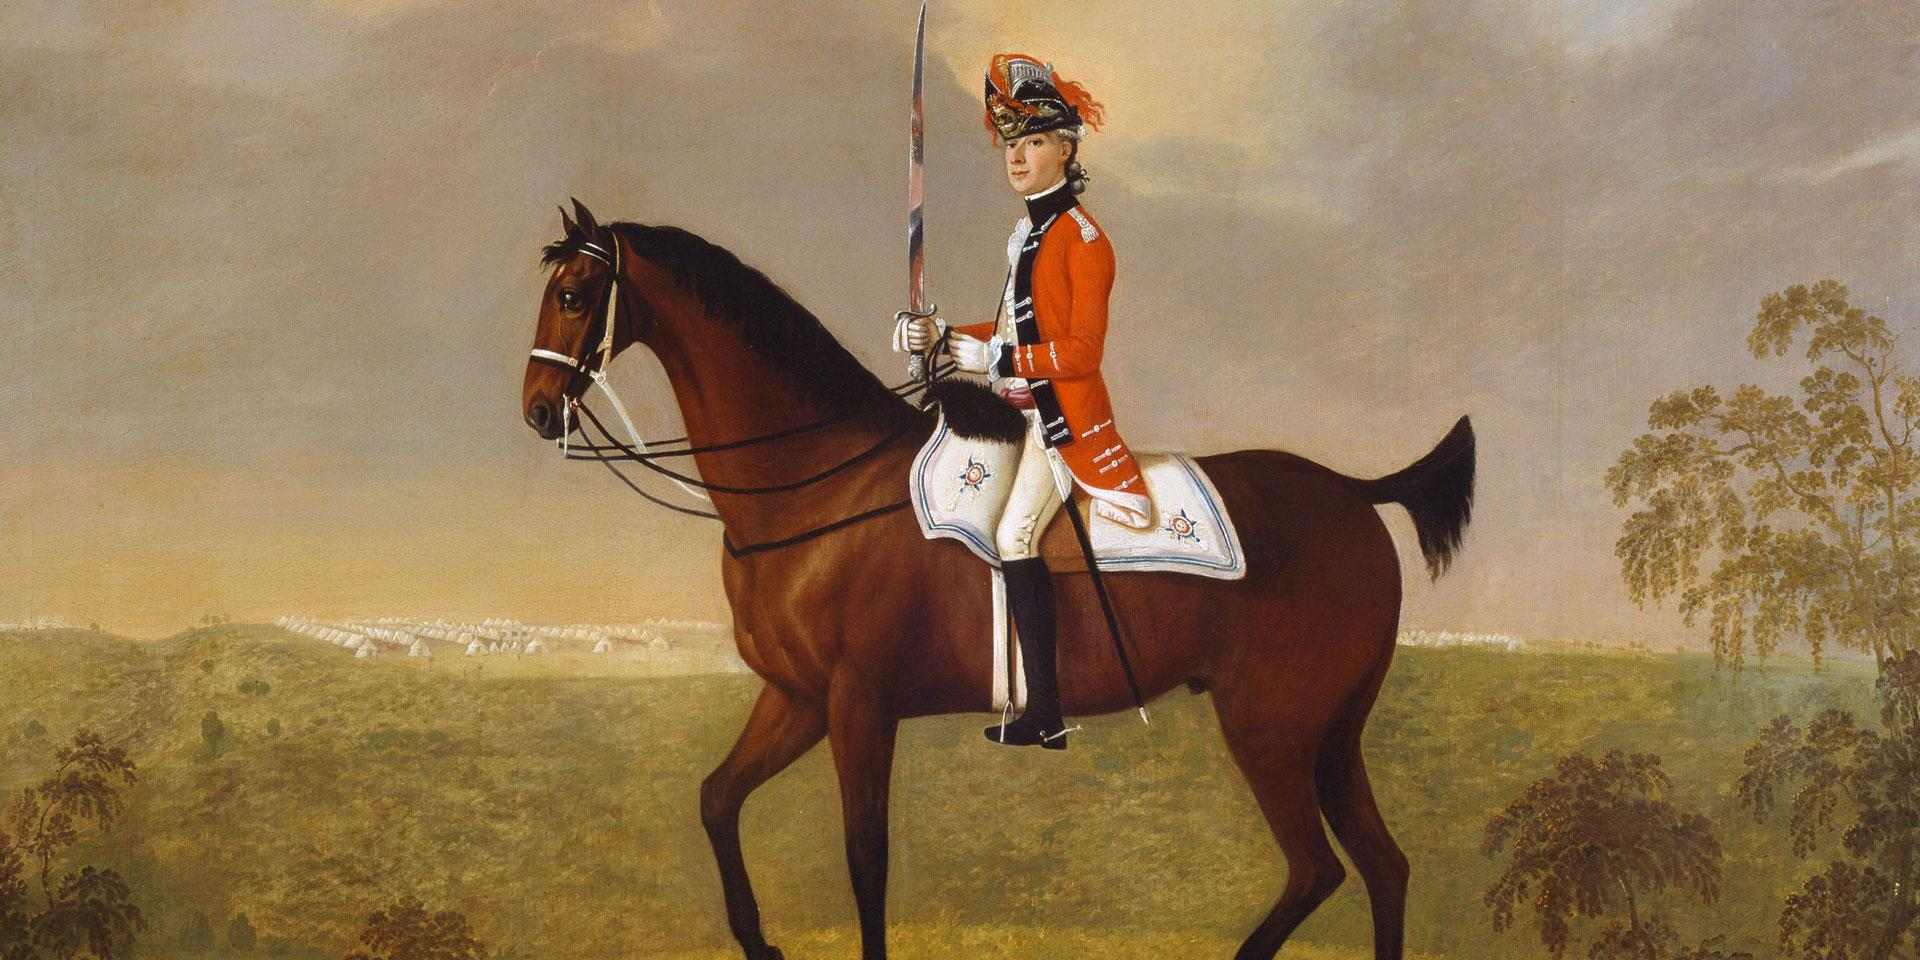 Coronet Thomas Parkyns, 15th Light Dragoons, c1755